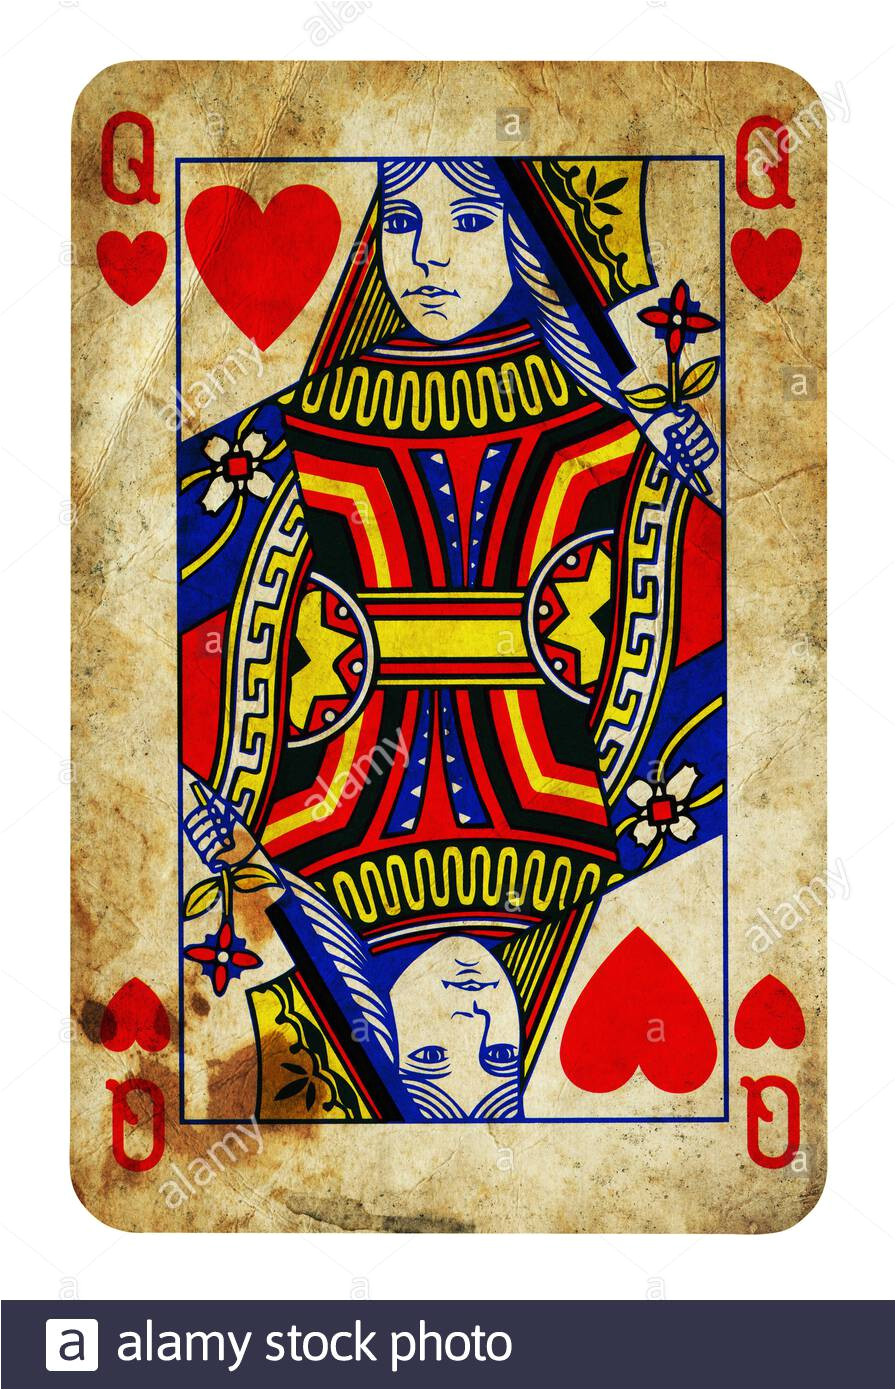 queen of hearts vintage playing card isolated on white clipping path included 2arg2w9 jpg